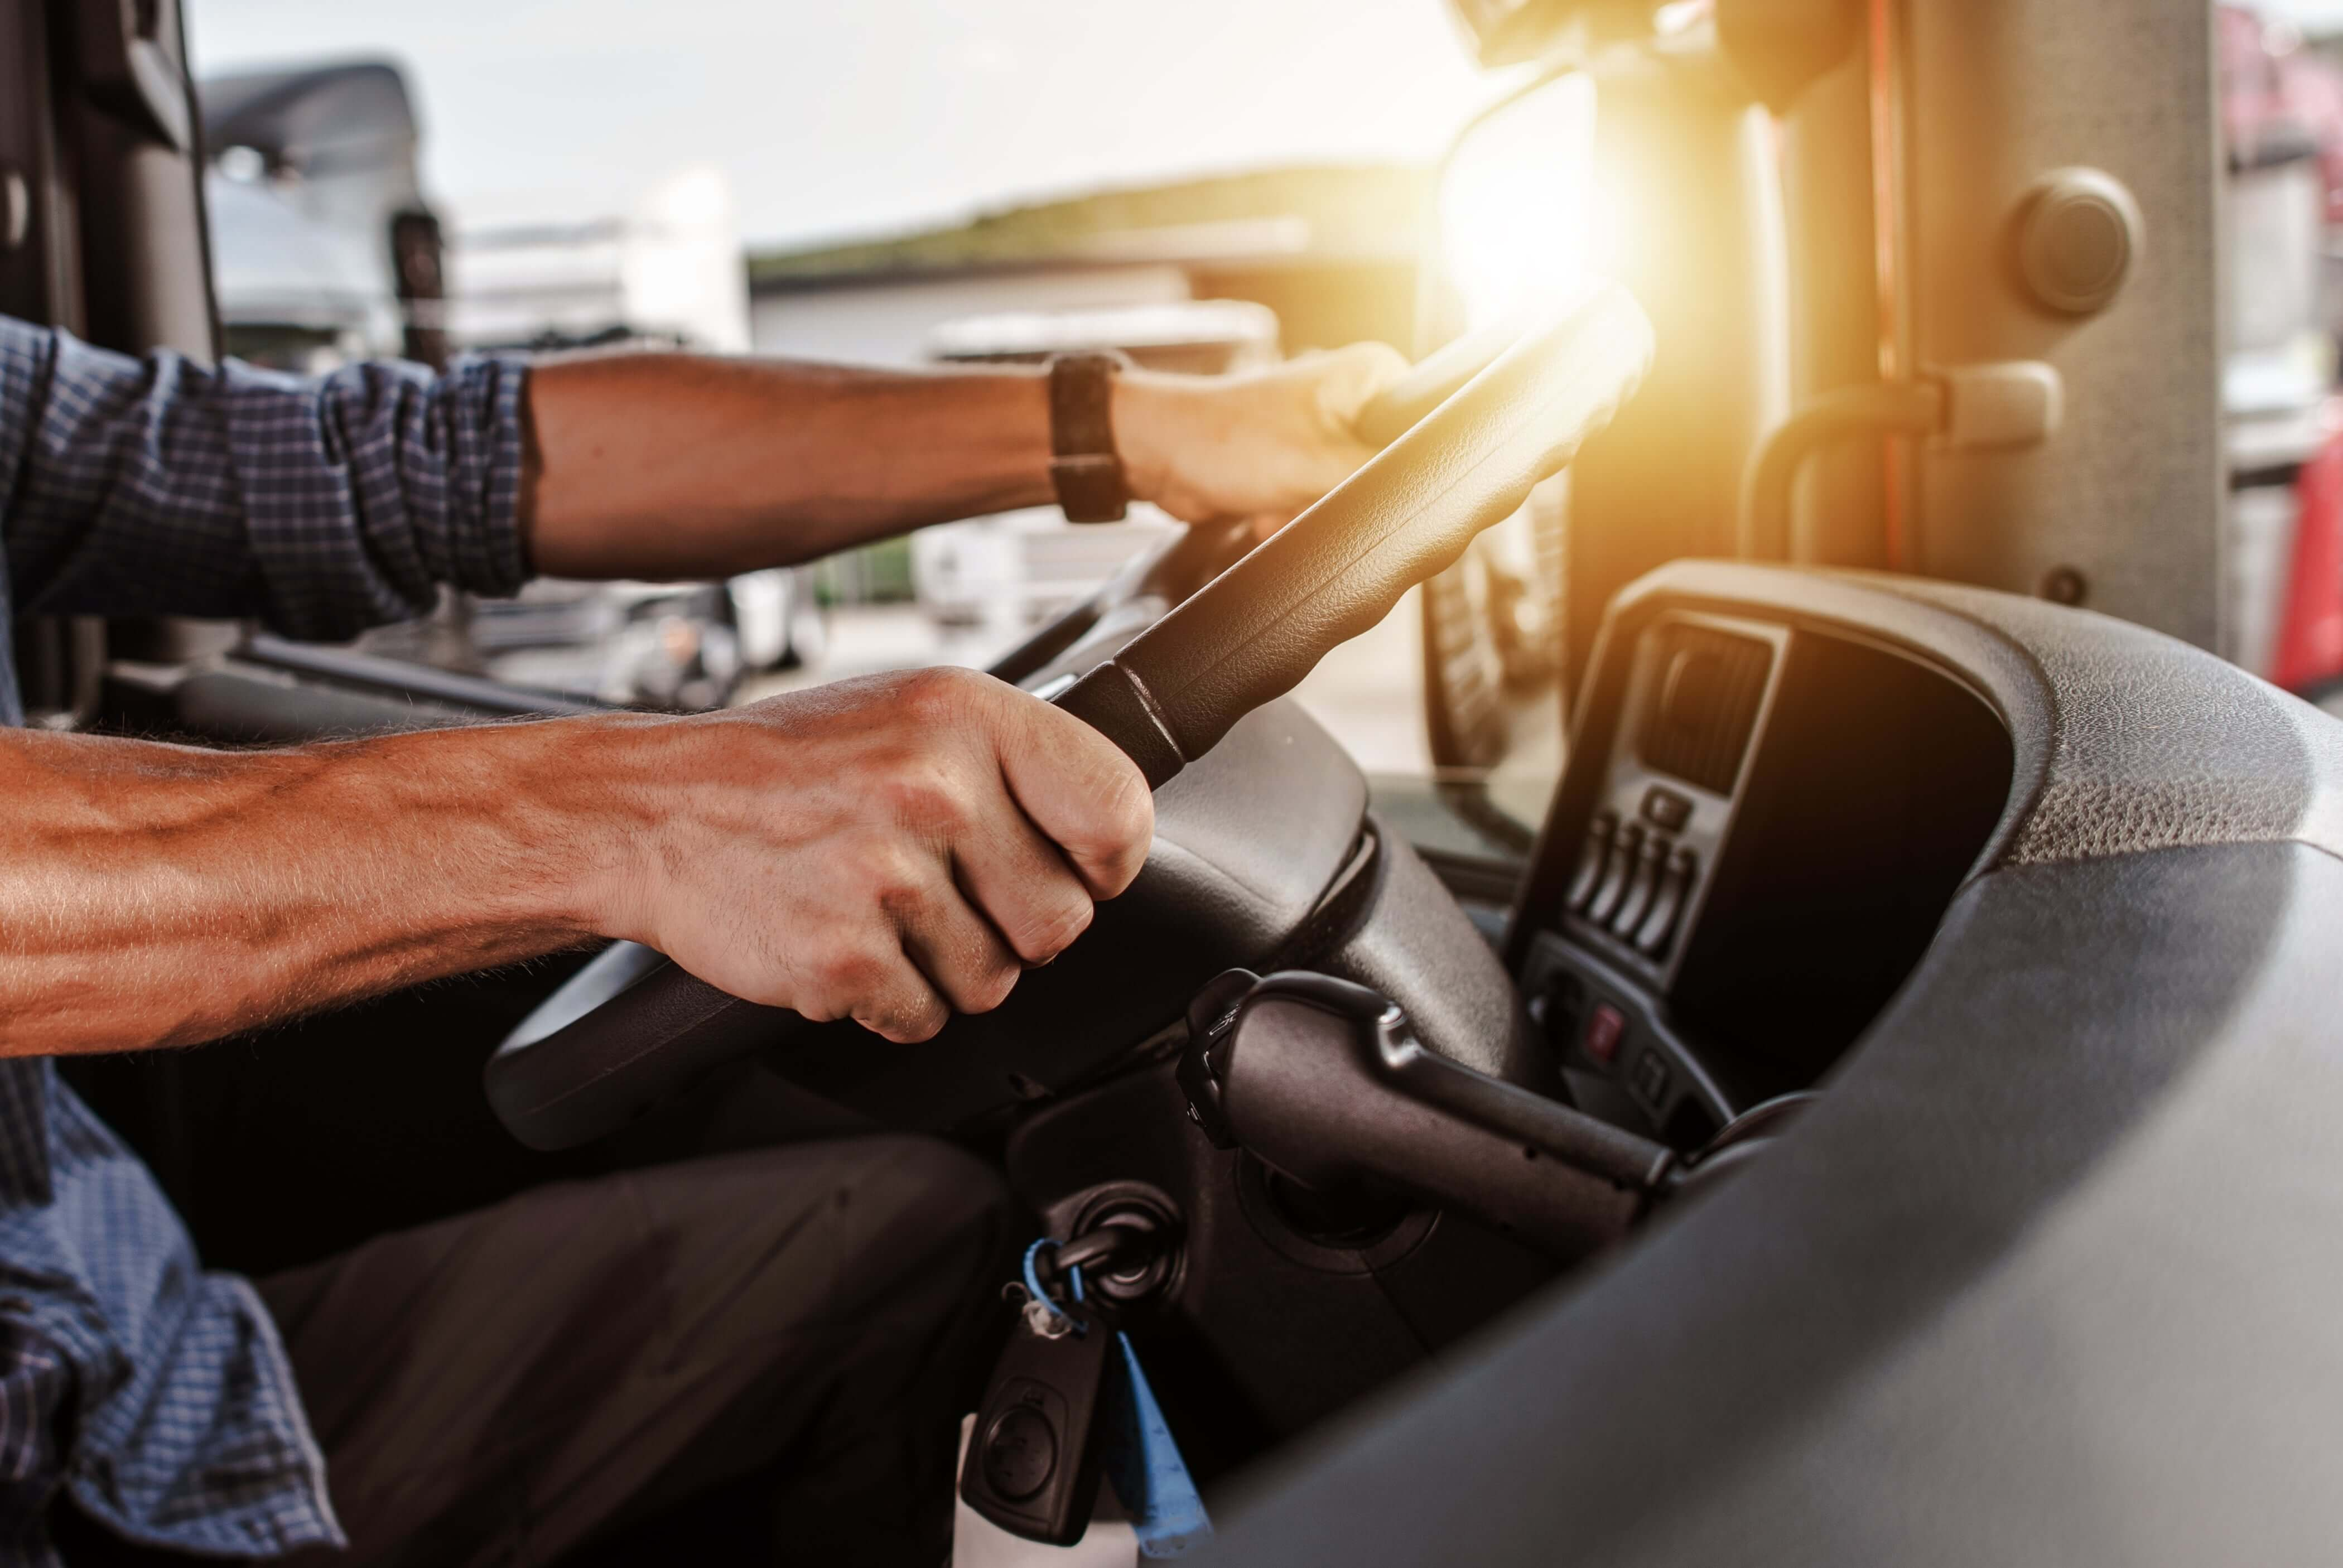 Dedicated truck drivers typically run the same routes regularly